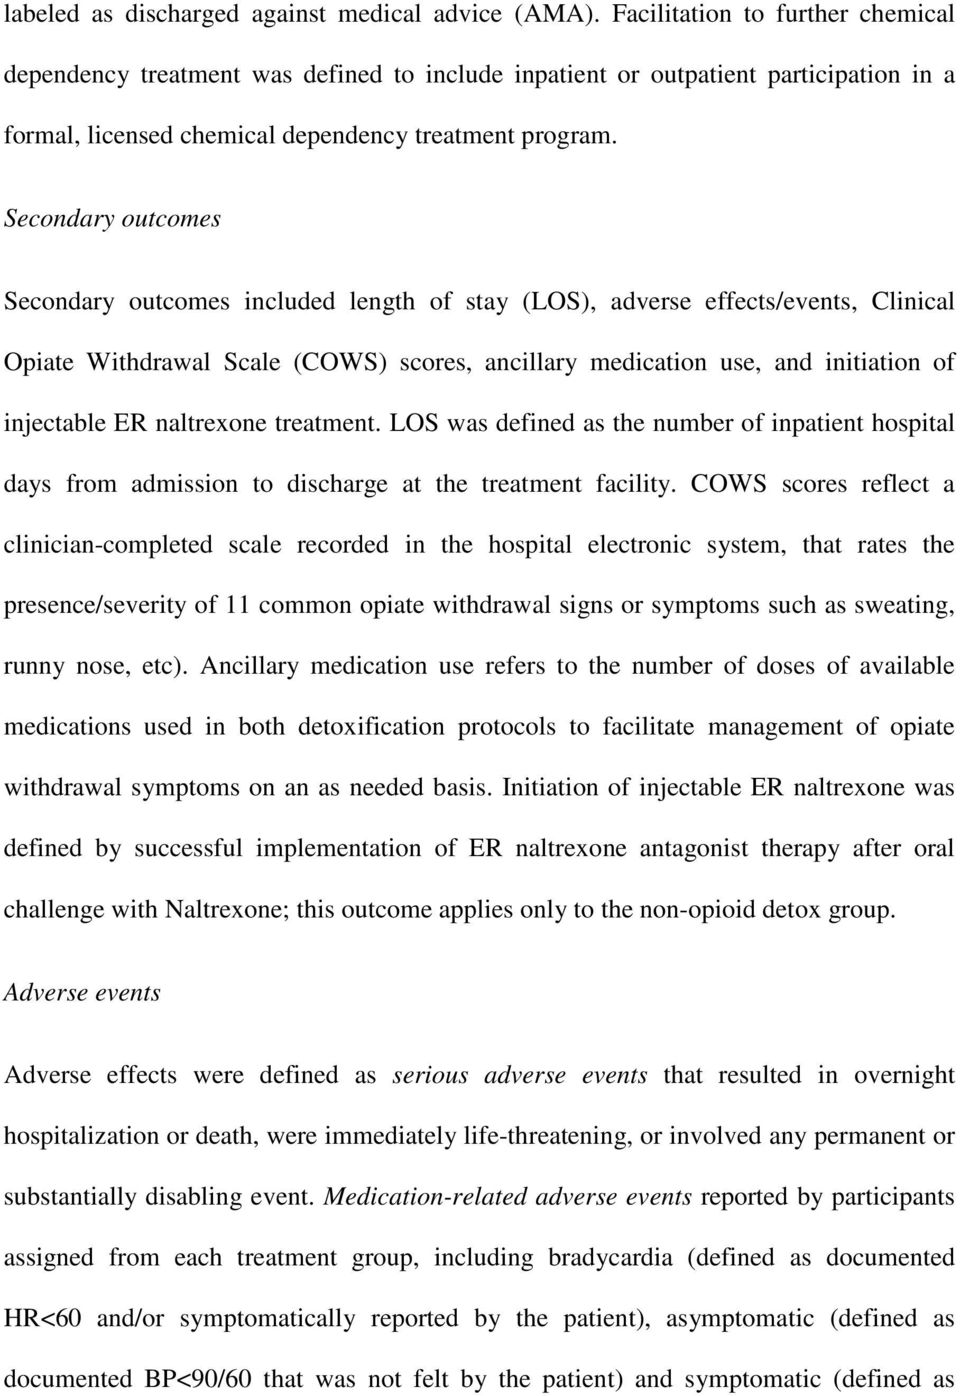 Secondary outcomes Secondary outcomes included length of stay (LOS), adverse effects/events, Clinical Opiate Withdrawal Scale (COWS) scores, ancillary medication use, and initiation of injectable ER